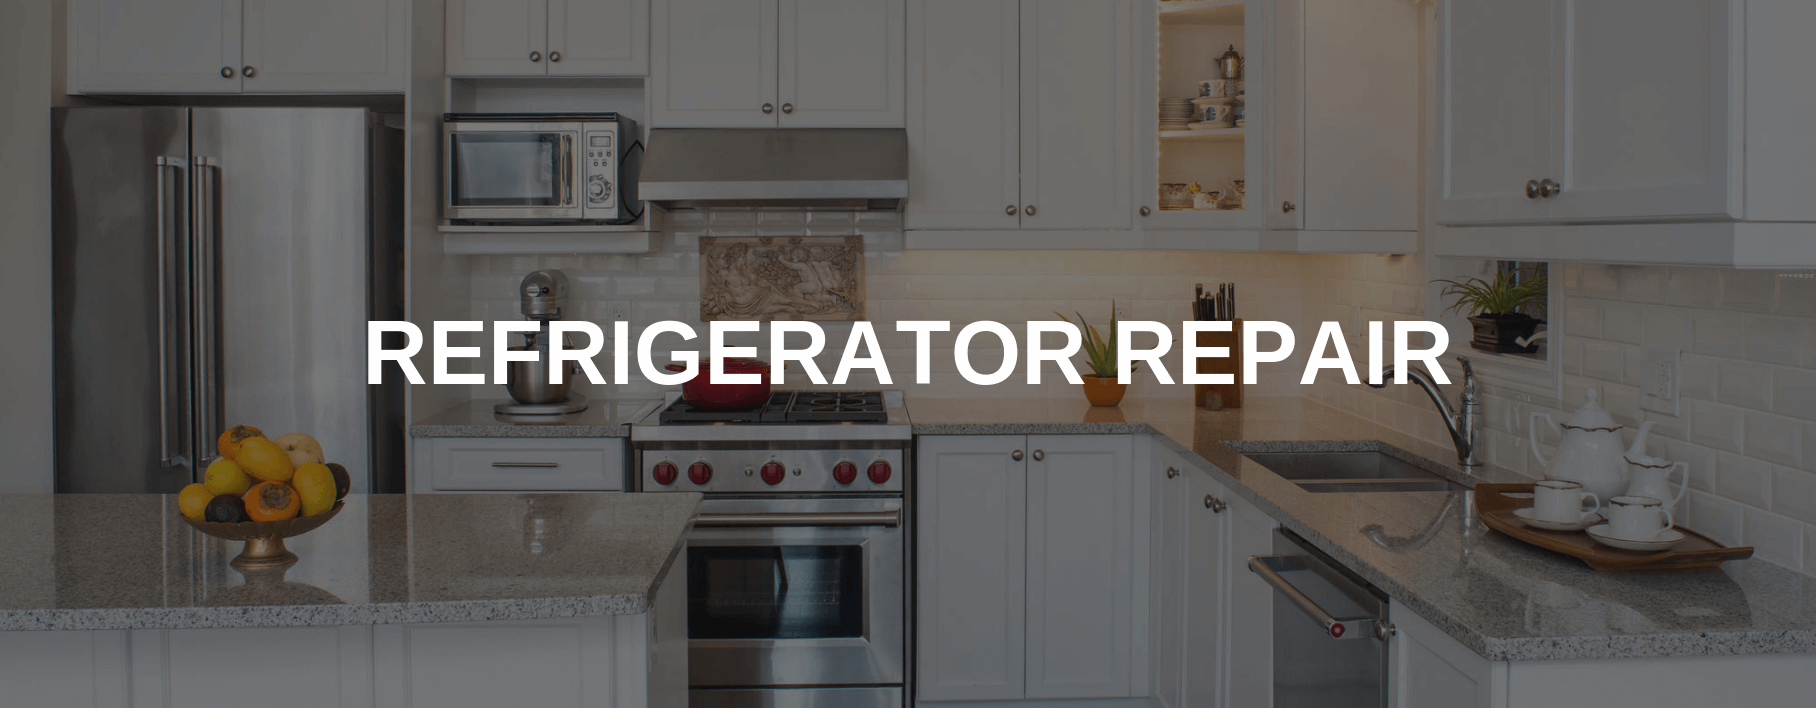 refrigerator repair windsor